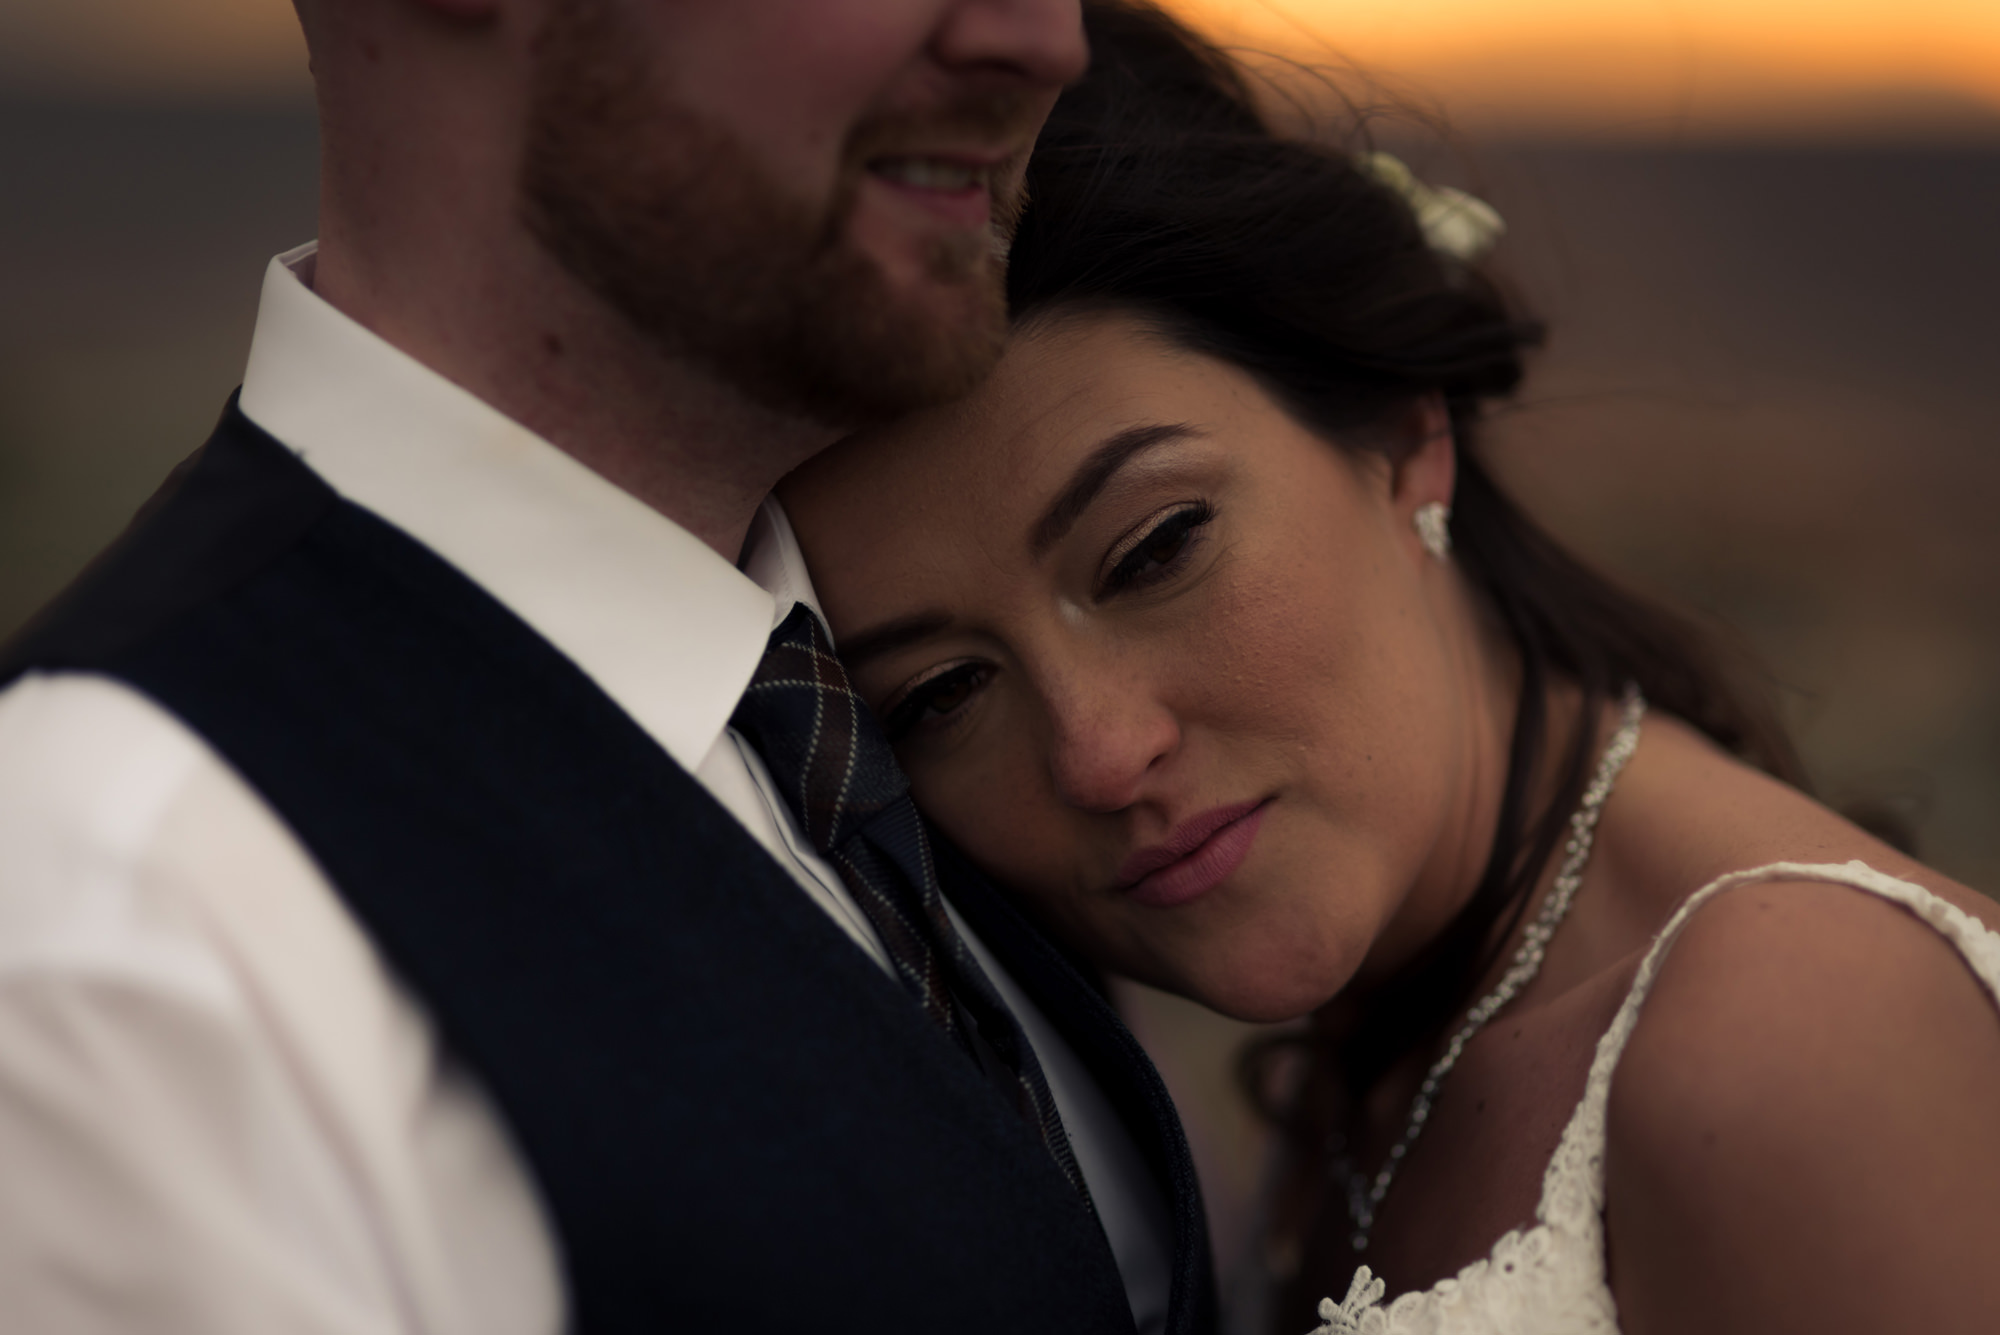 alternative-wedding-photographer-glasgow.jpg